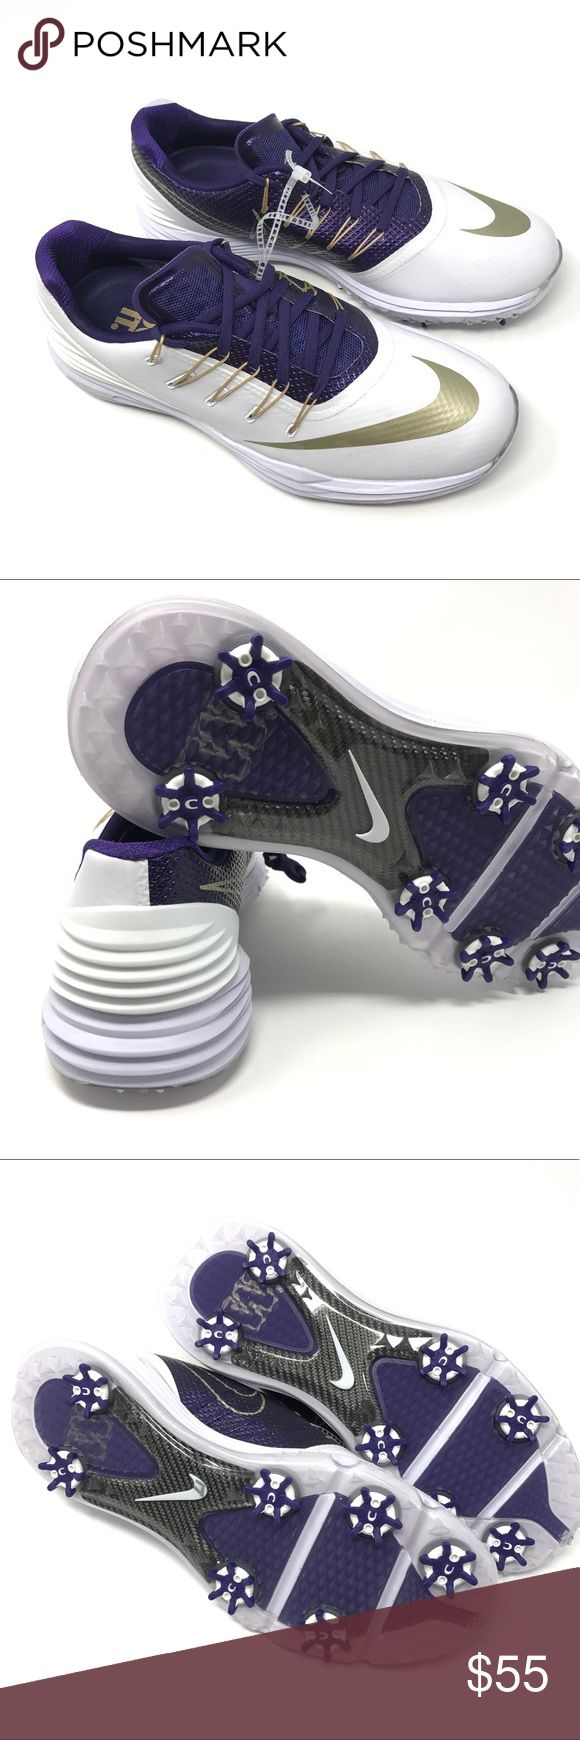 Nike Lunar 4 Women's Golf Shoes The Nike UW Huskies Lunar Control 4 Women's Golf Shoe is made with springy, responsive cushioning and a waterproof microfiber upper for lasting comfort and a lightweight fit during play.  BENEFITS  🔹Full-length Lunarlon midsole delivers unsurpassed cushioning underfoot🔹Nike Control Platform provides underfoot stability, smooth weight transfer and control through impact🔹Waterproof microfiber synthetic leather for durability🔹Zarma Tour Spike and Slim–LOK…